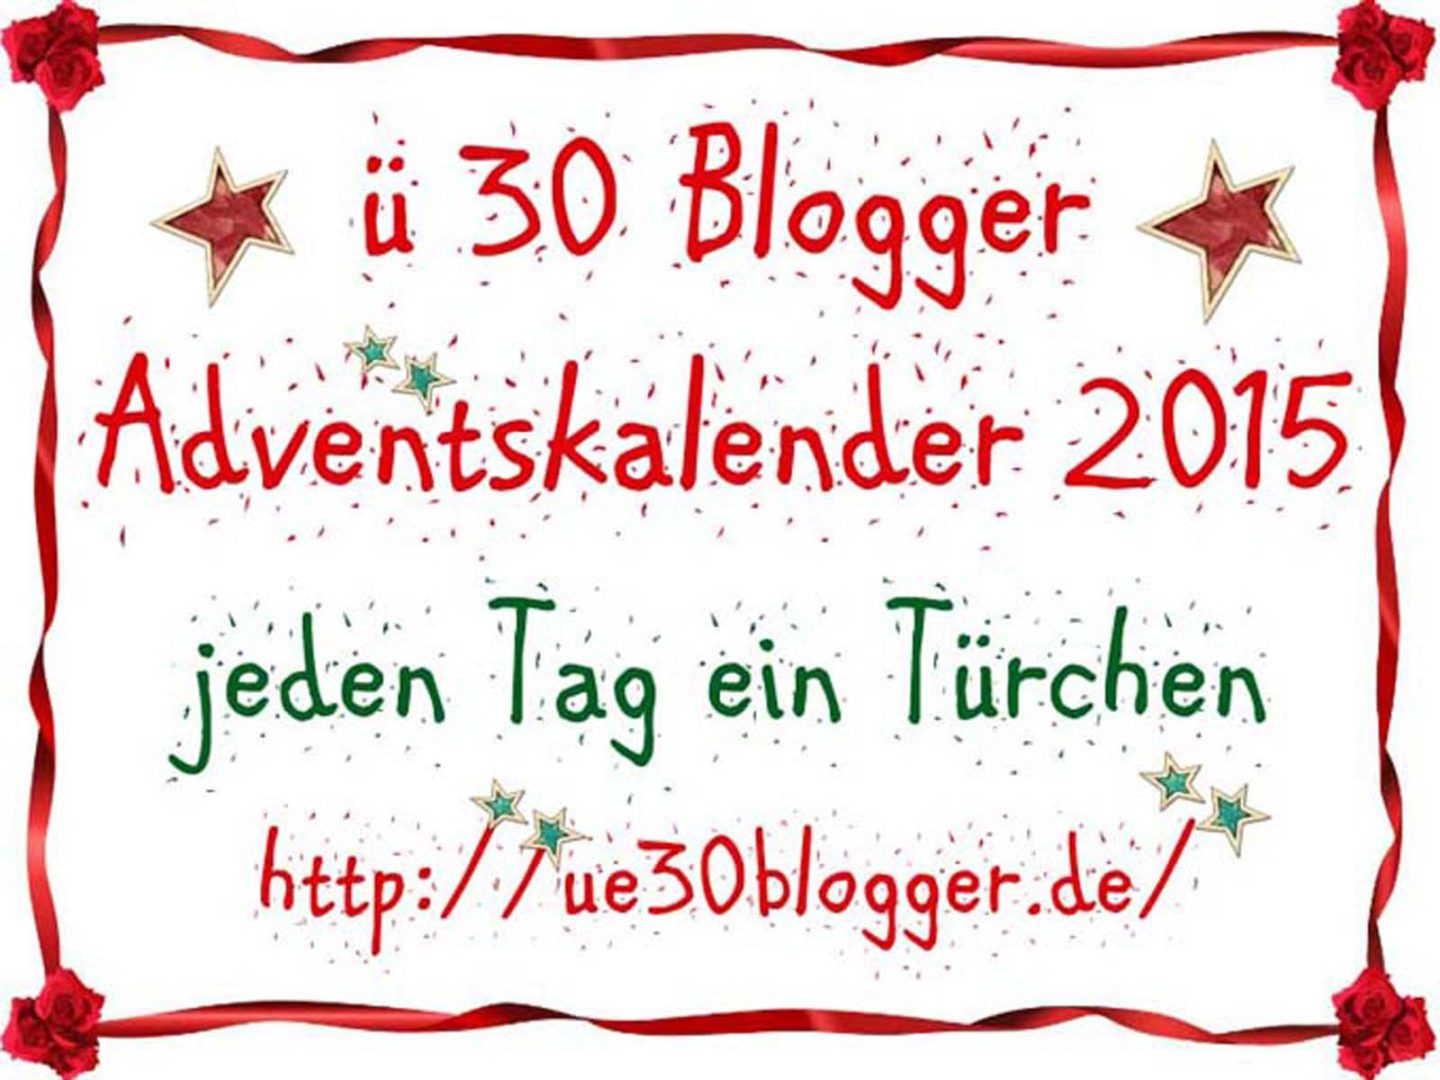 Adventskalender der ü30Blogger: 23.12.